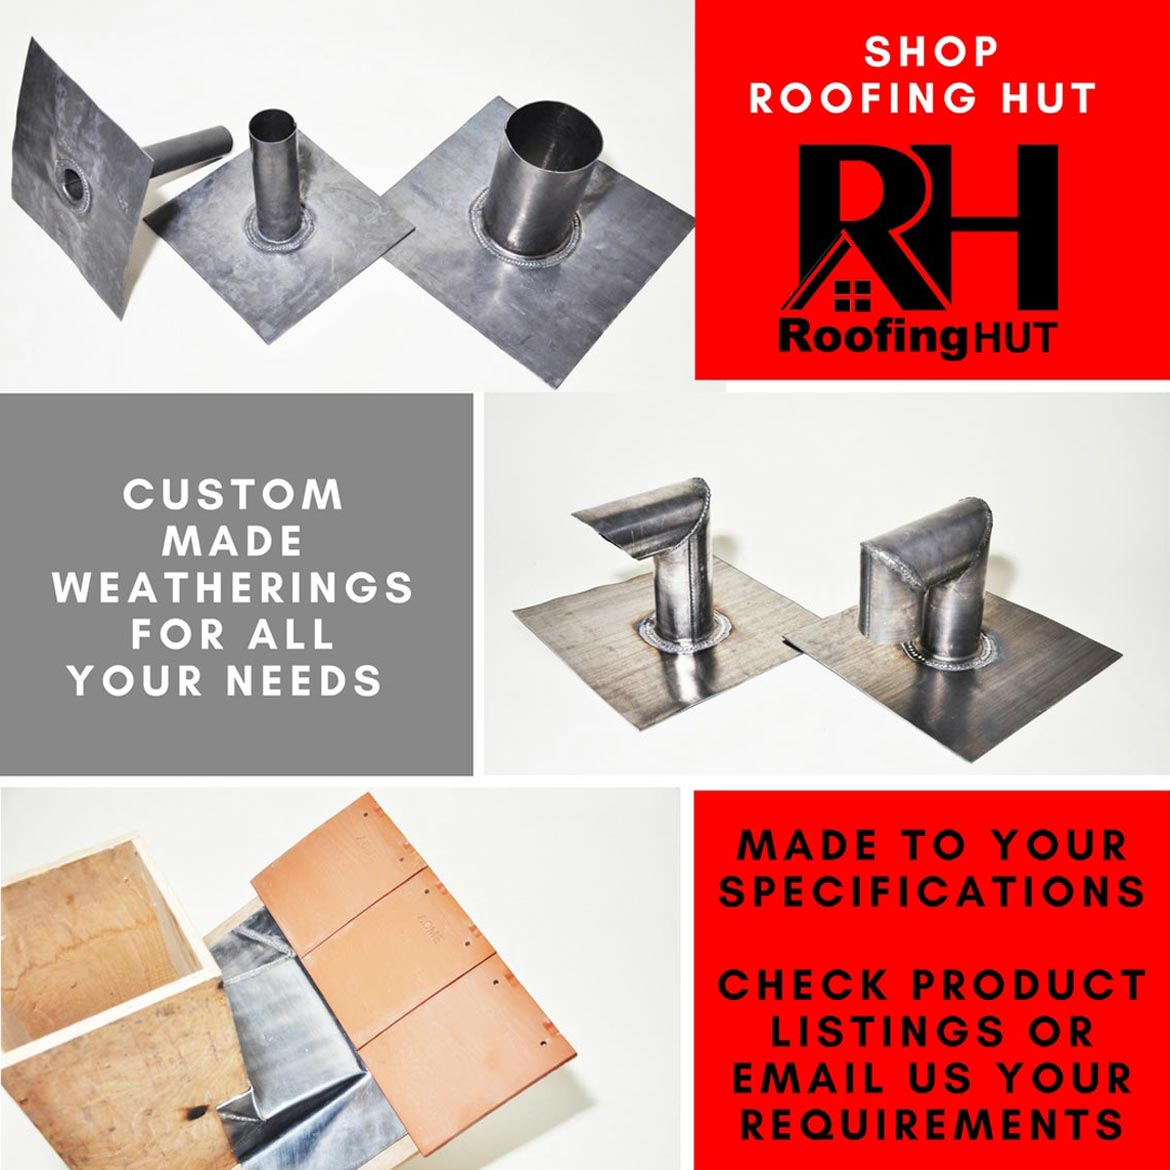 Custom made weatherings and roofing materials